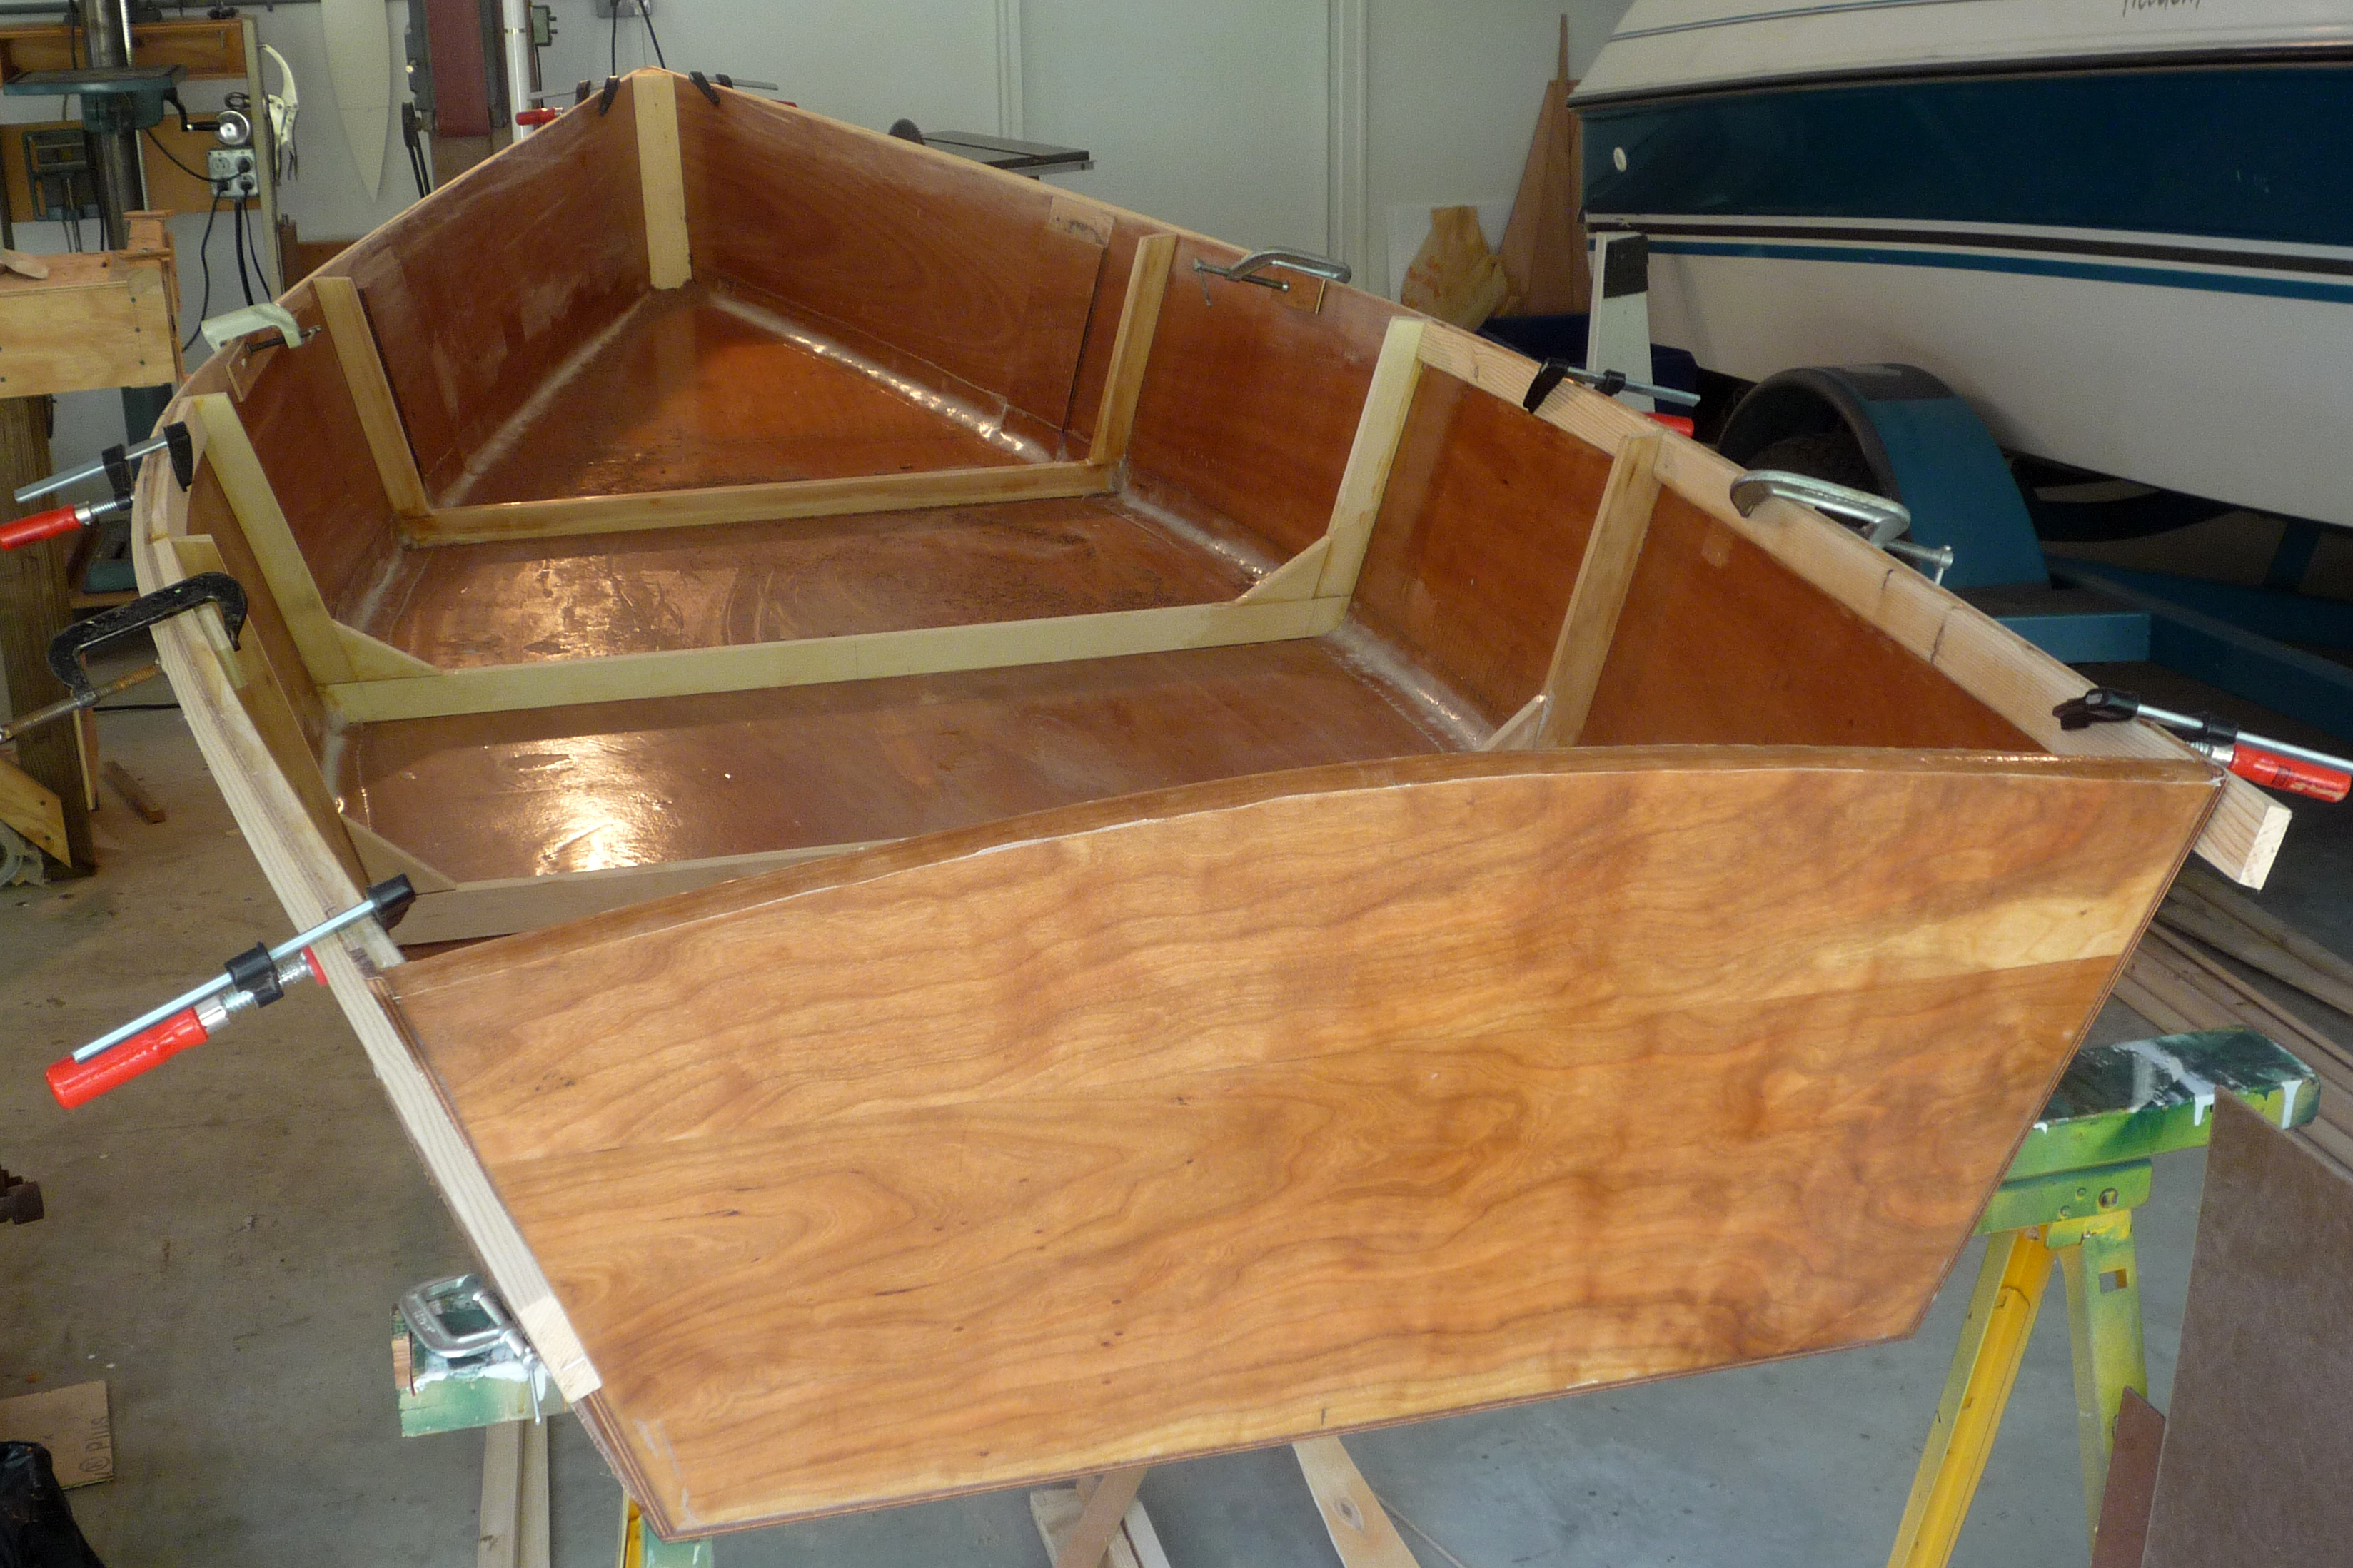 24+Foot+Skiff+Plywood 24 Foot Skiff Plywood http://www.pic2fly.com ...